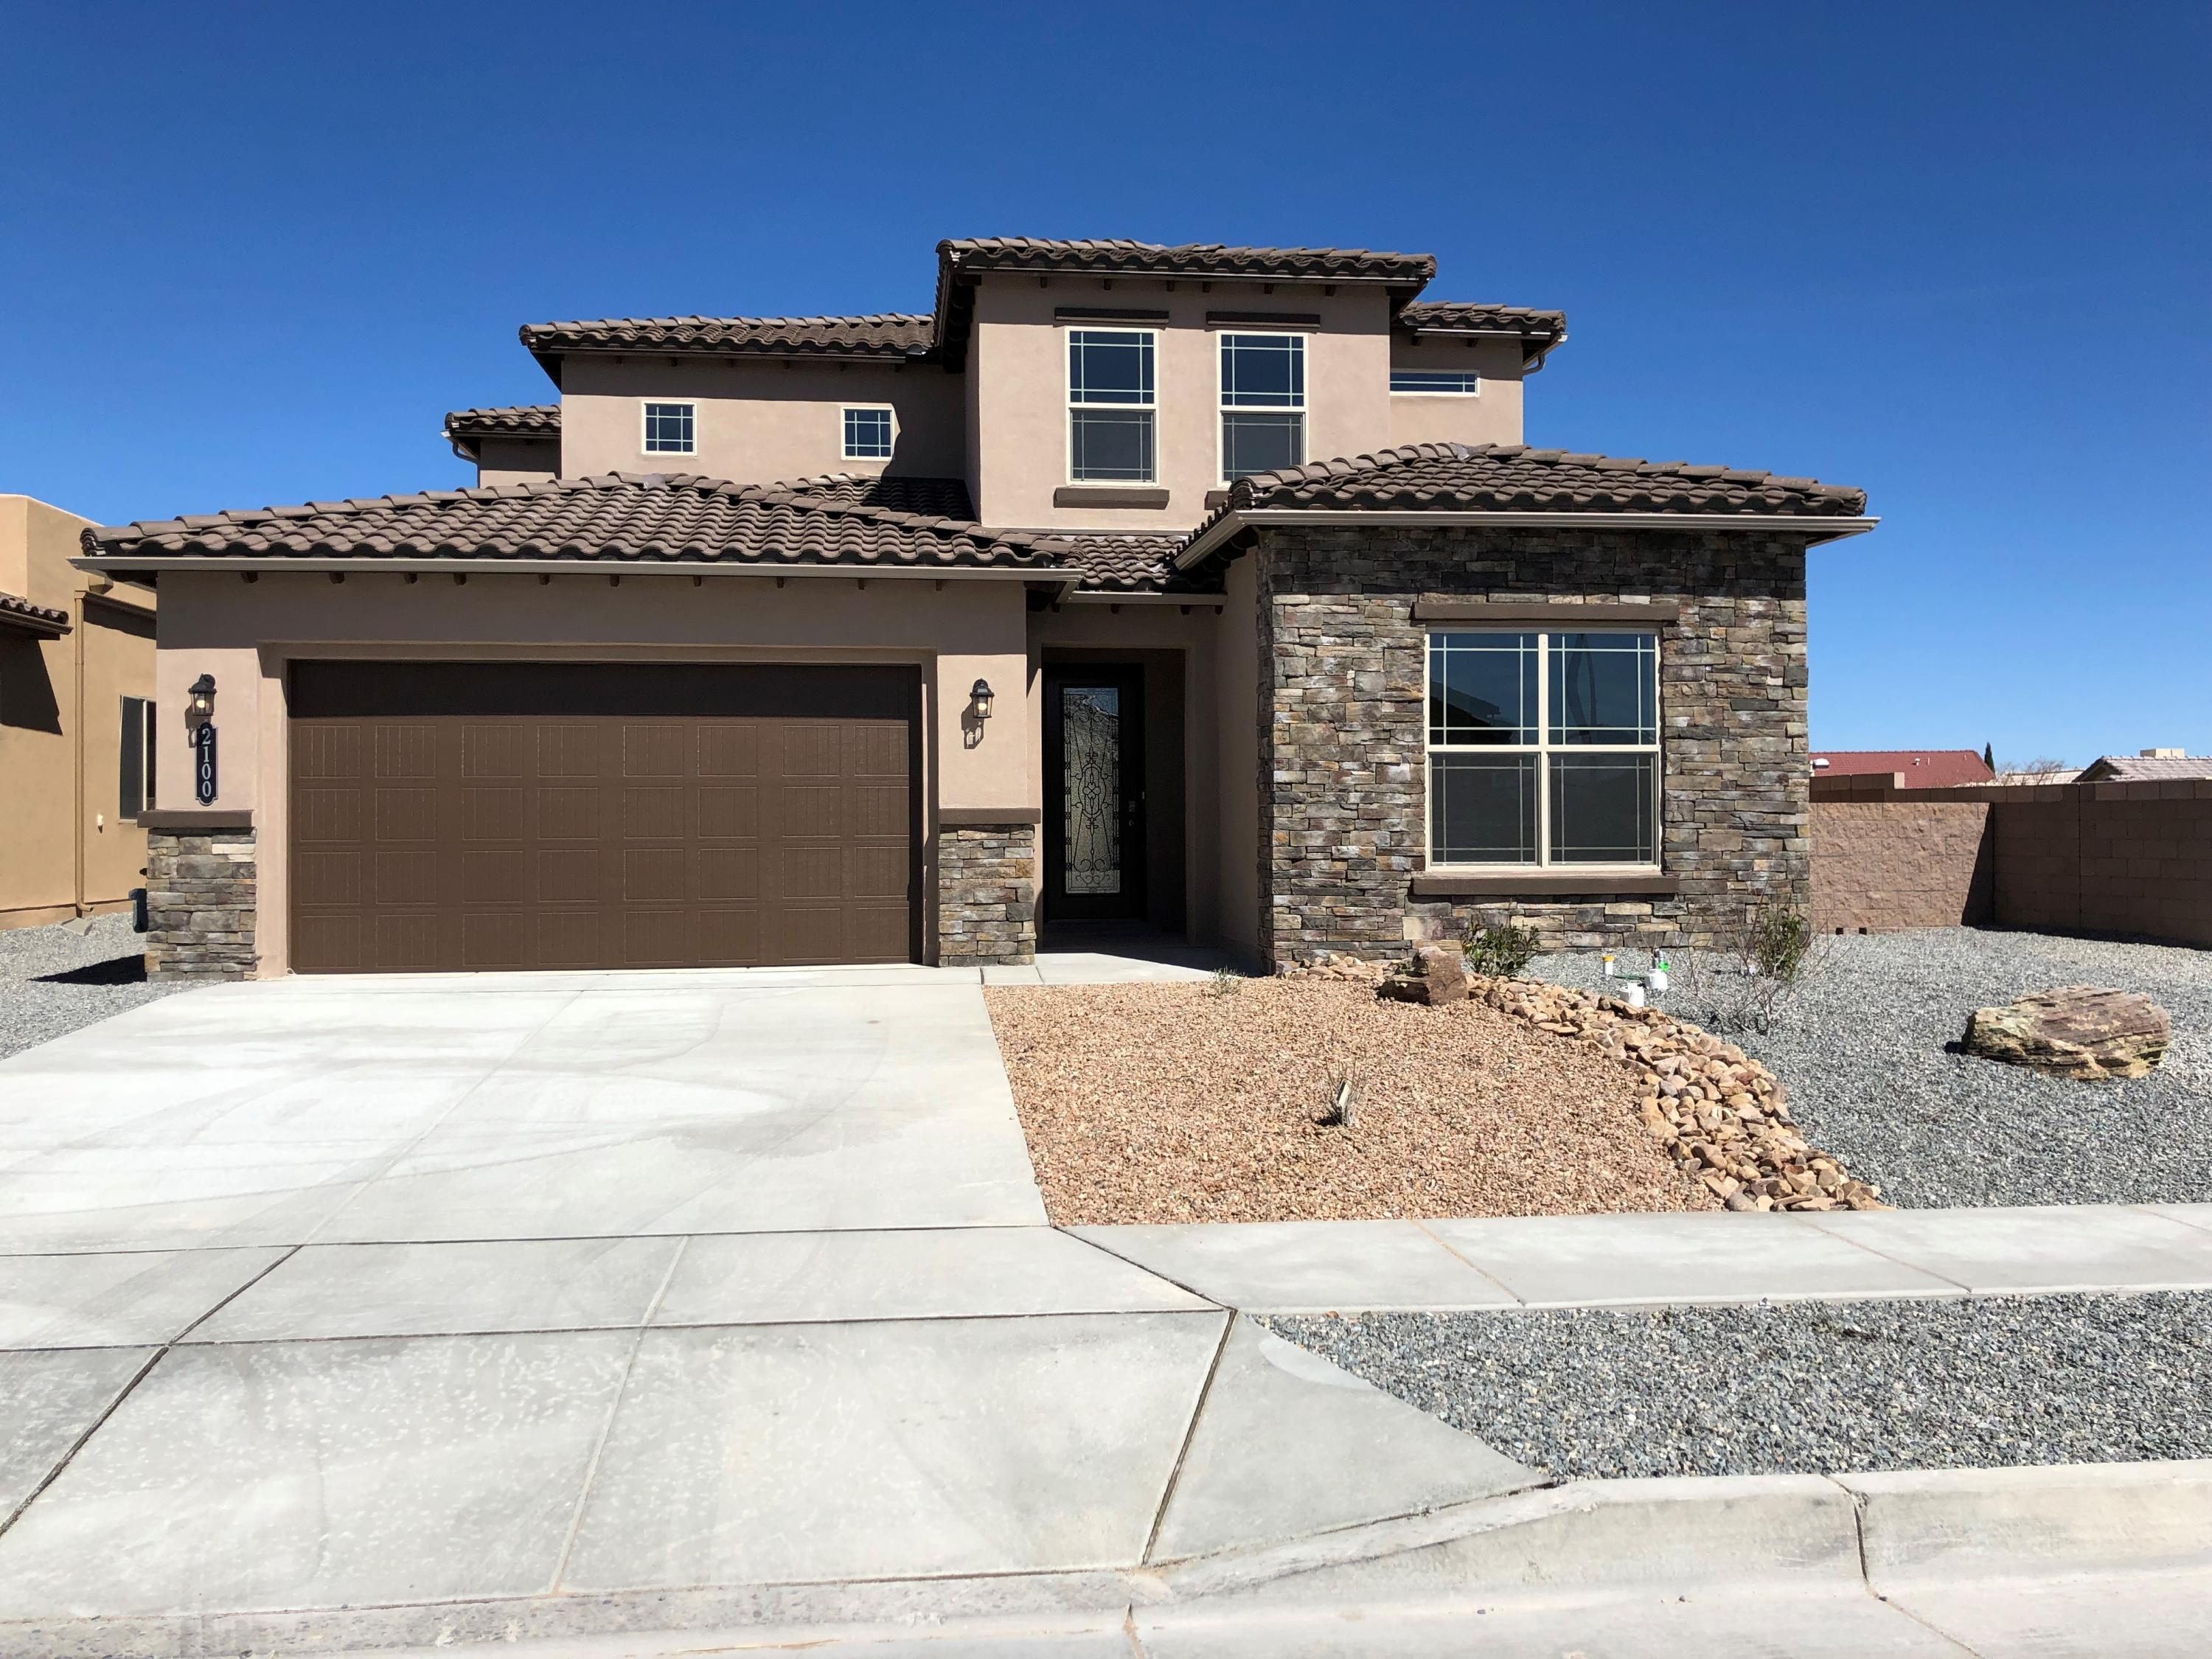 2100 NW Torrent Drive, Northwest Albuquerque and Northwest Heights, New Mexico